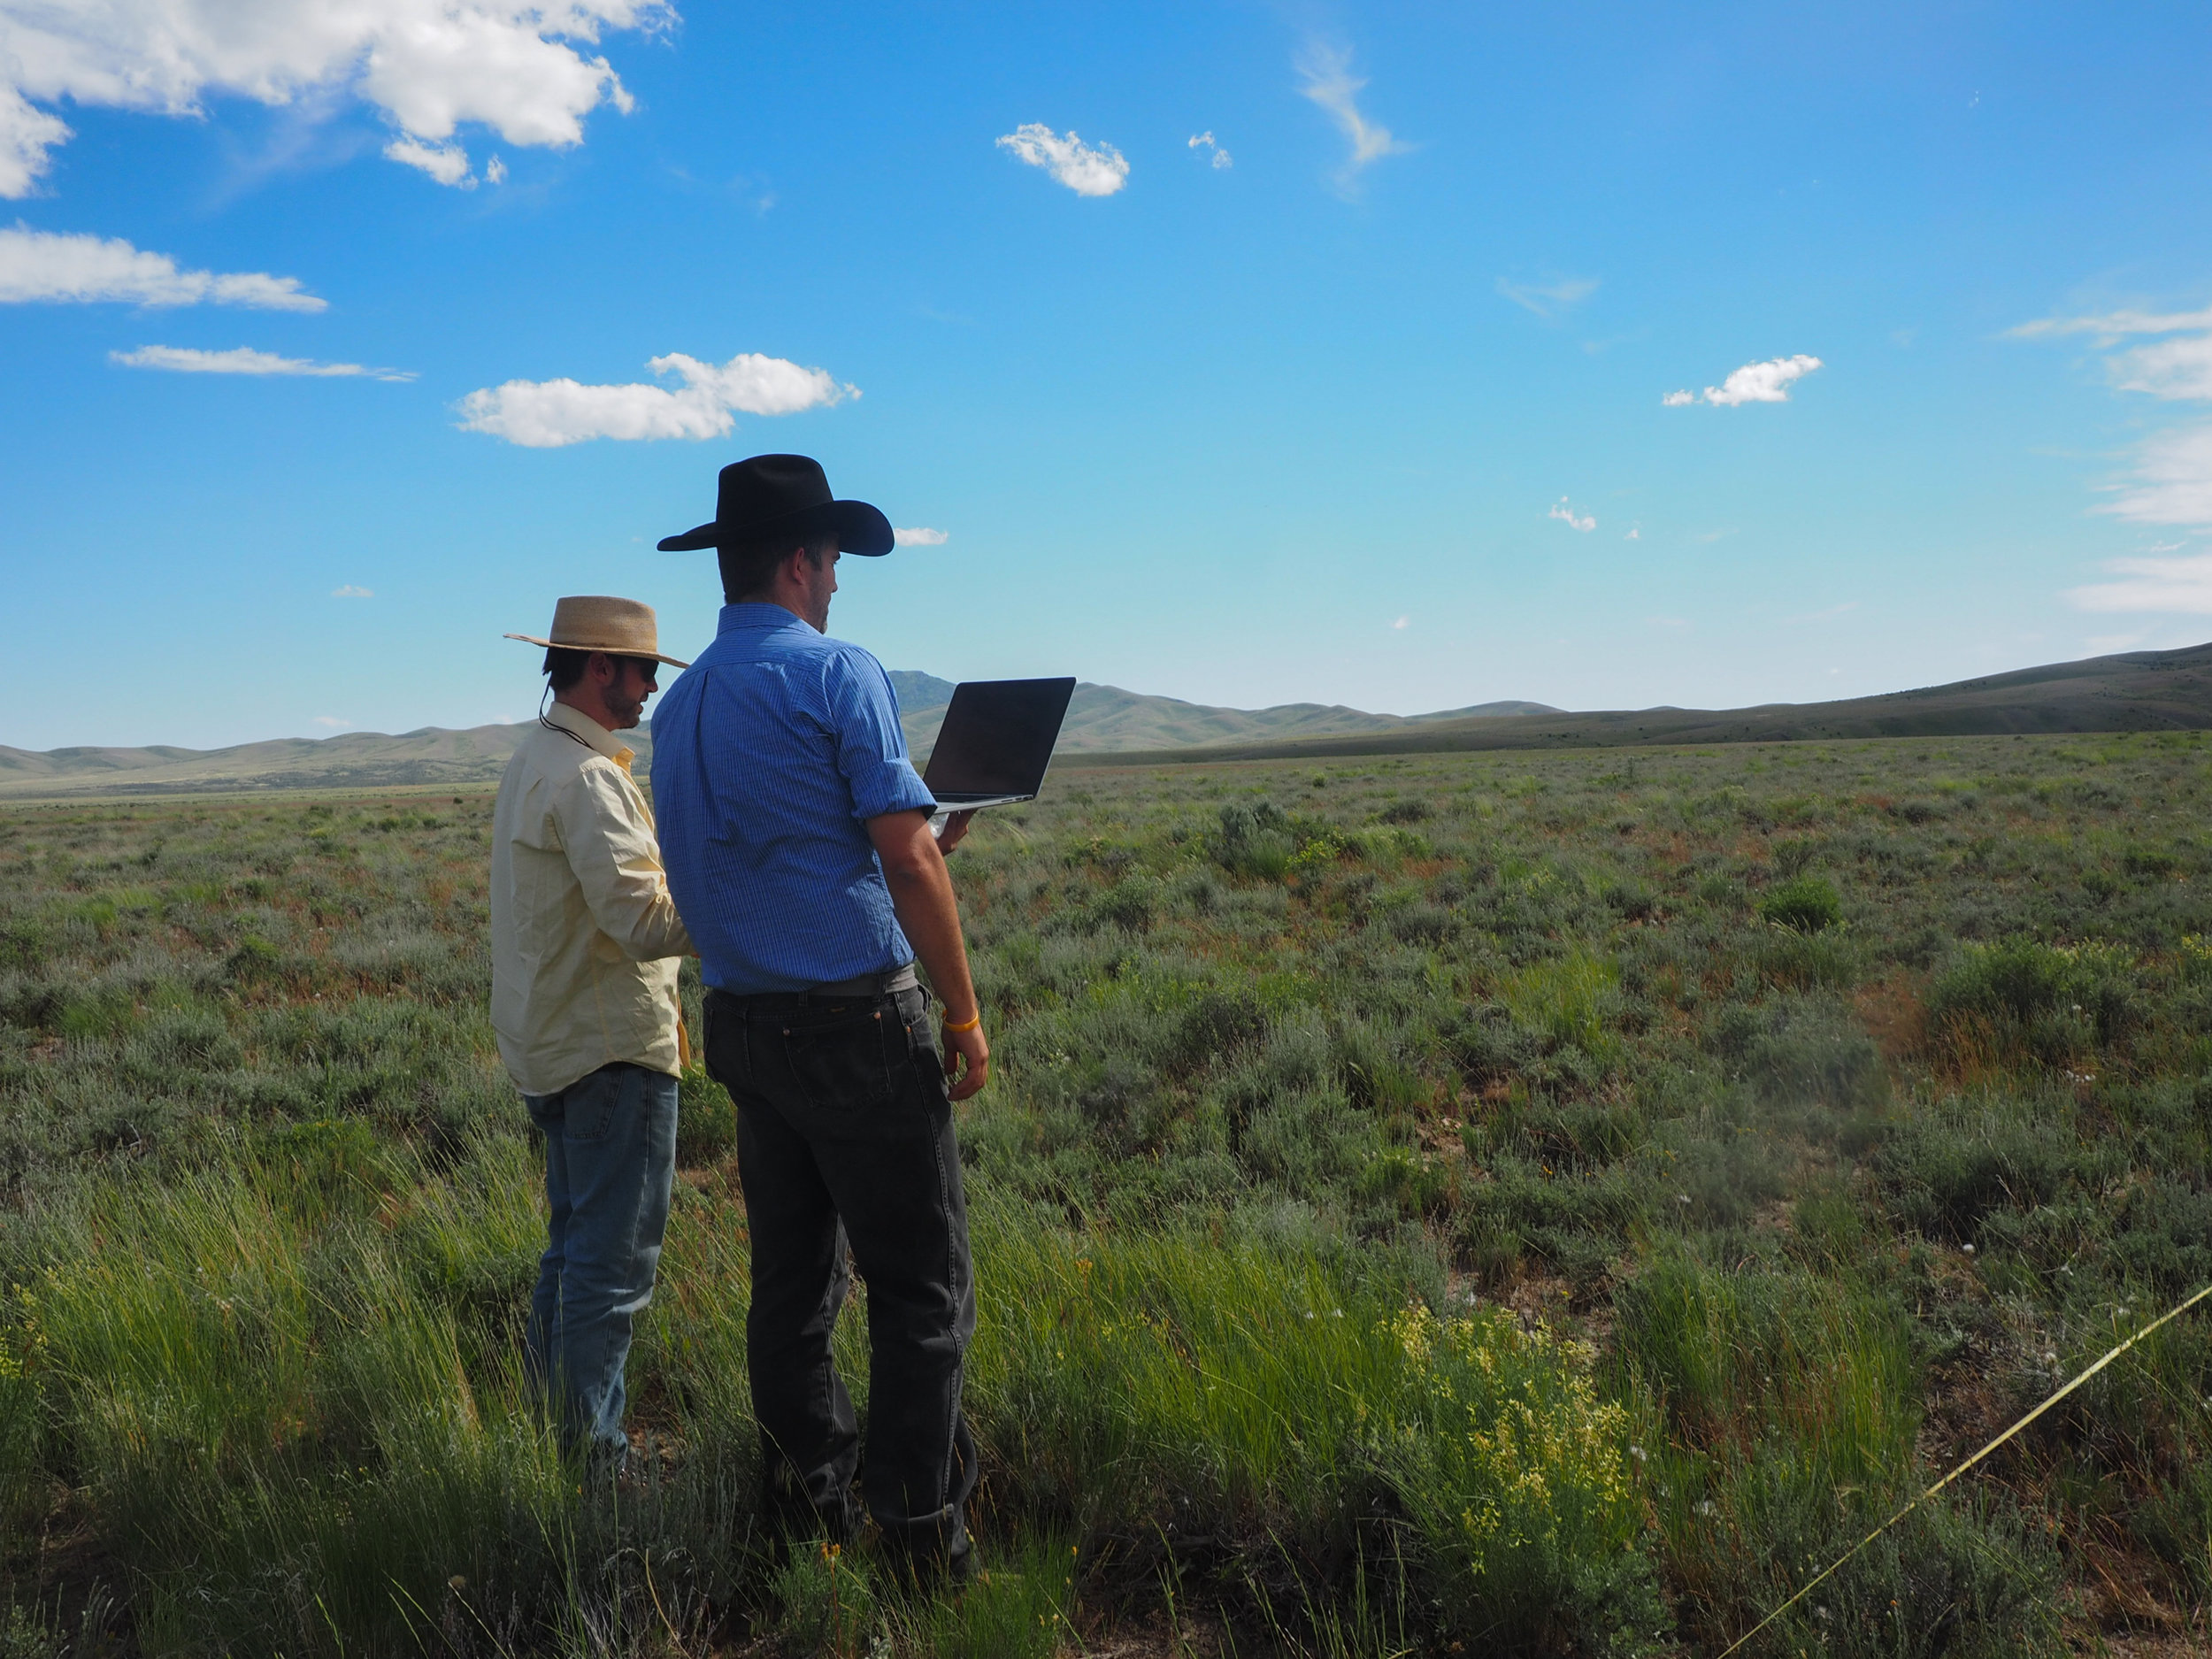 Lucas Phipps, University of Nevada-Reno, and Ethan Mower, Nevada Department of Agriculture, compare models for remote sensing for range monitoring with on the ground conditions.